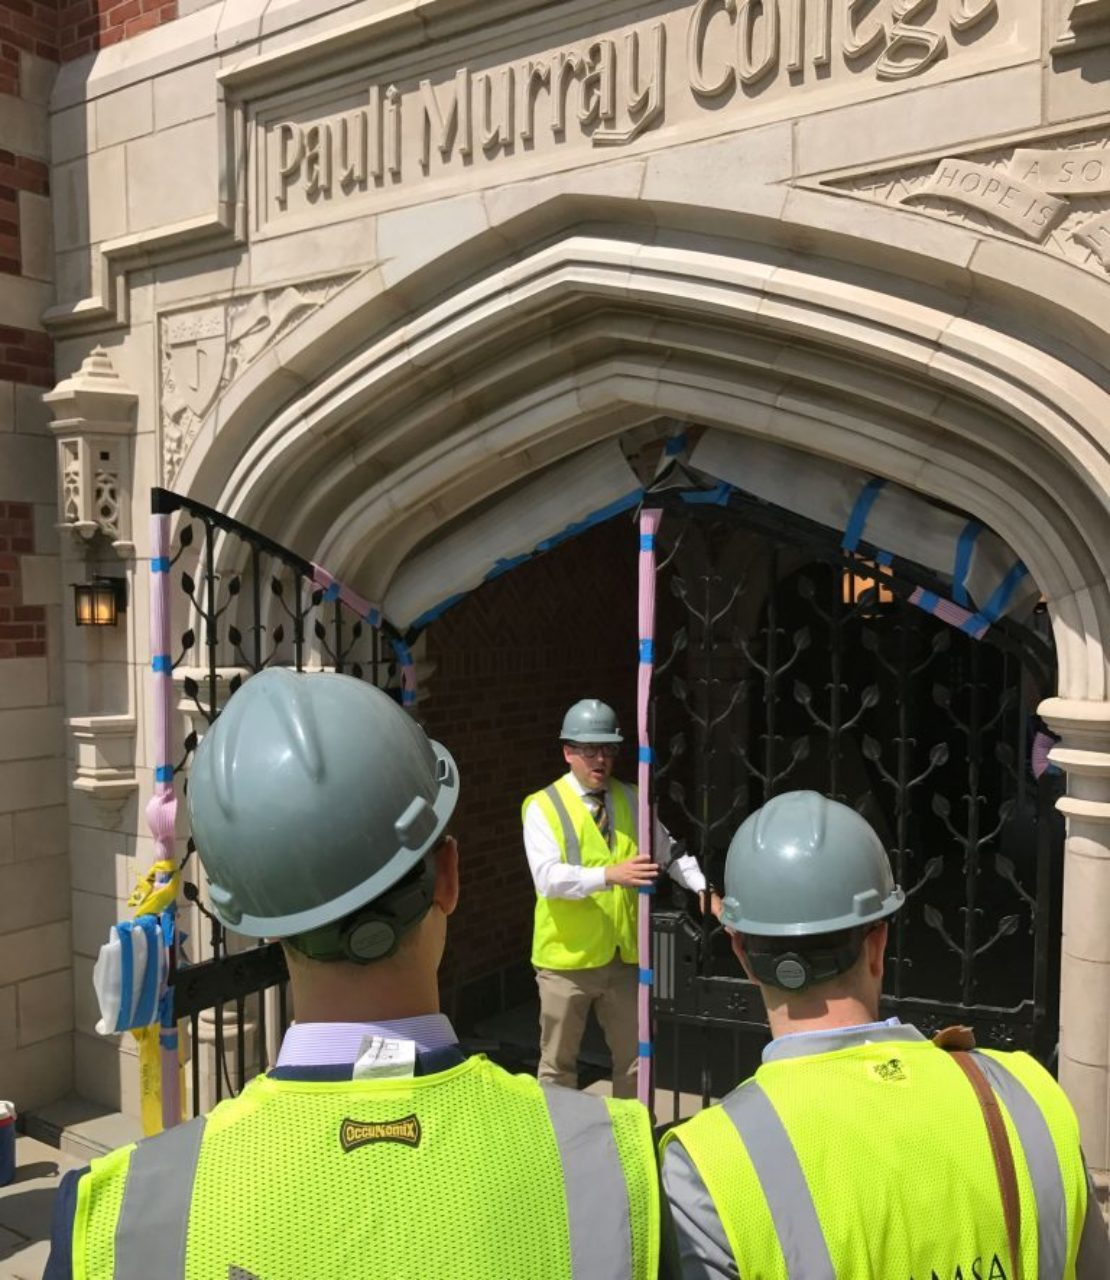 Tour participants inspect the ironwork in the gates at Pauli Murray College